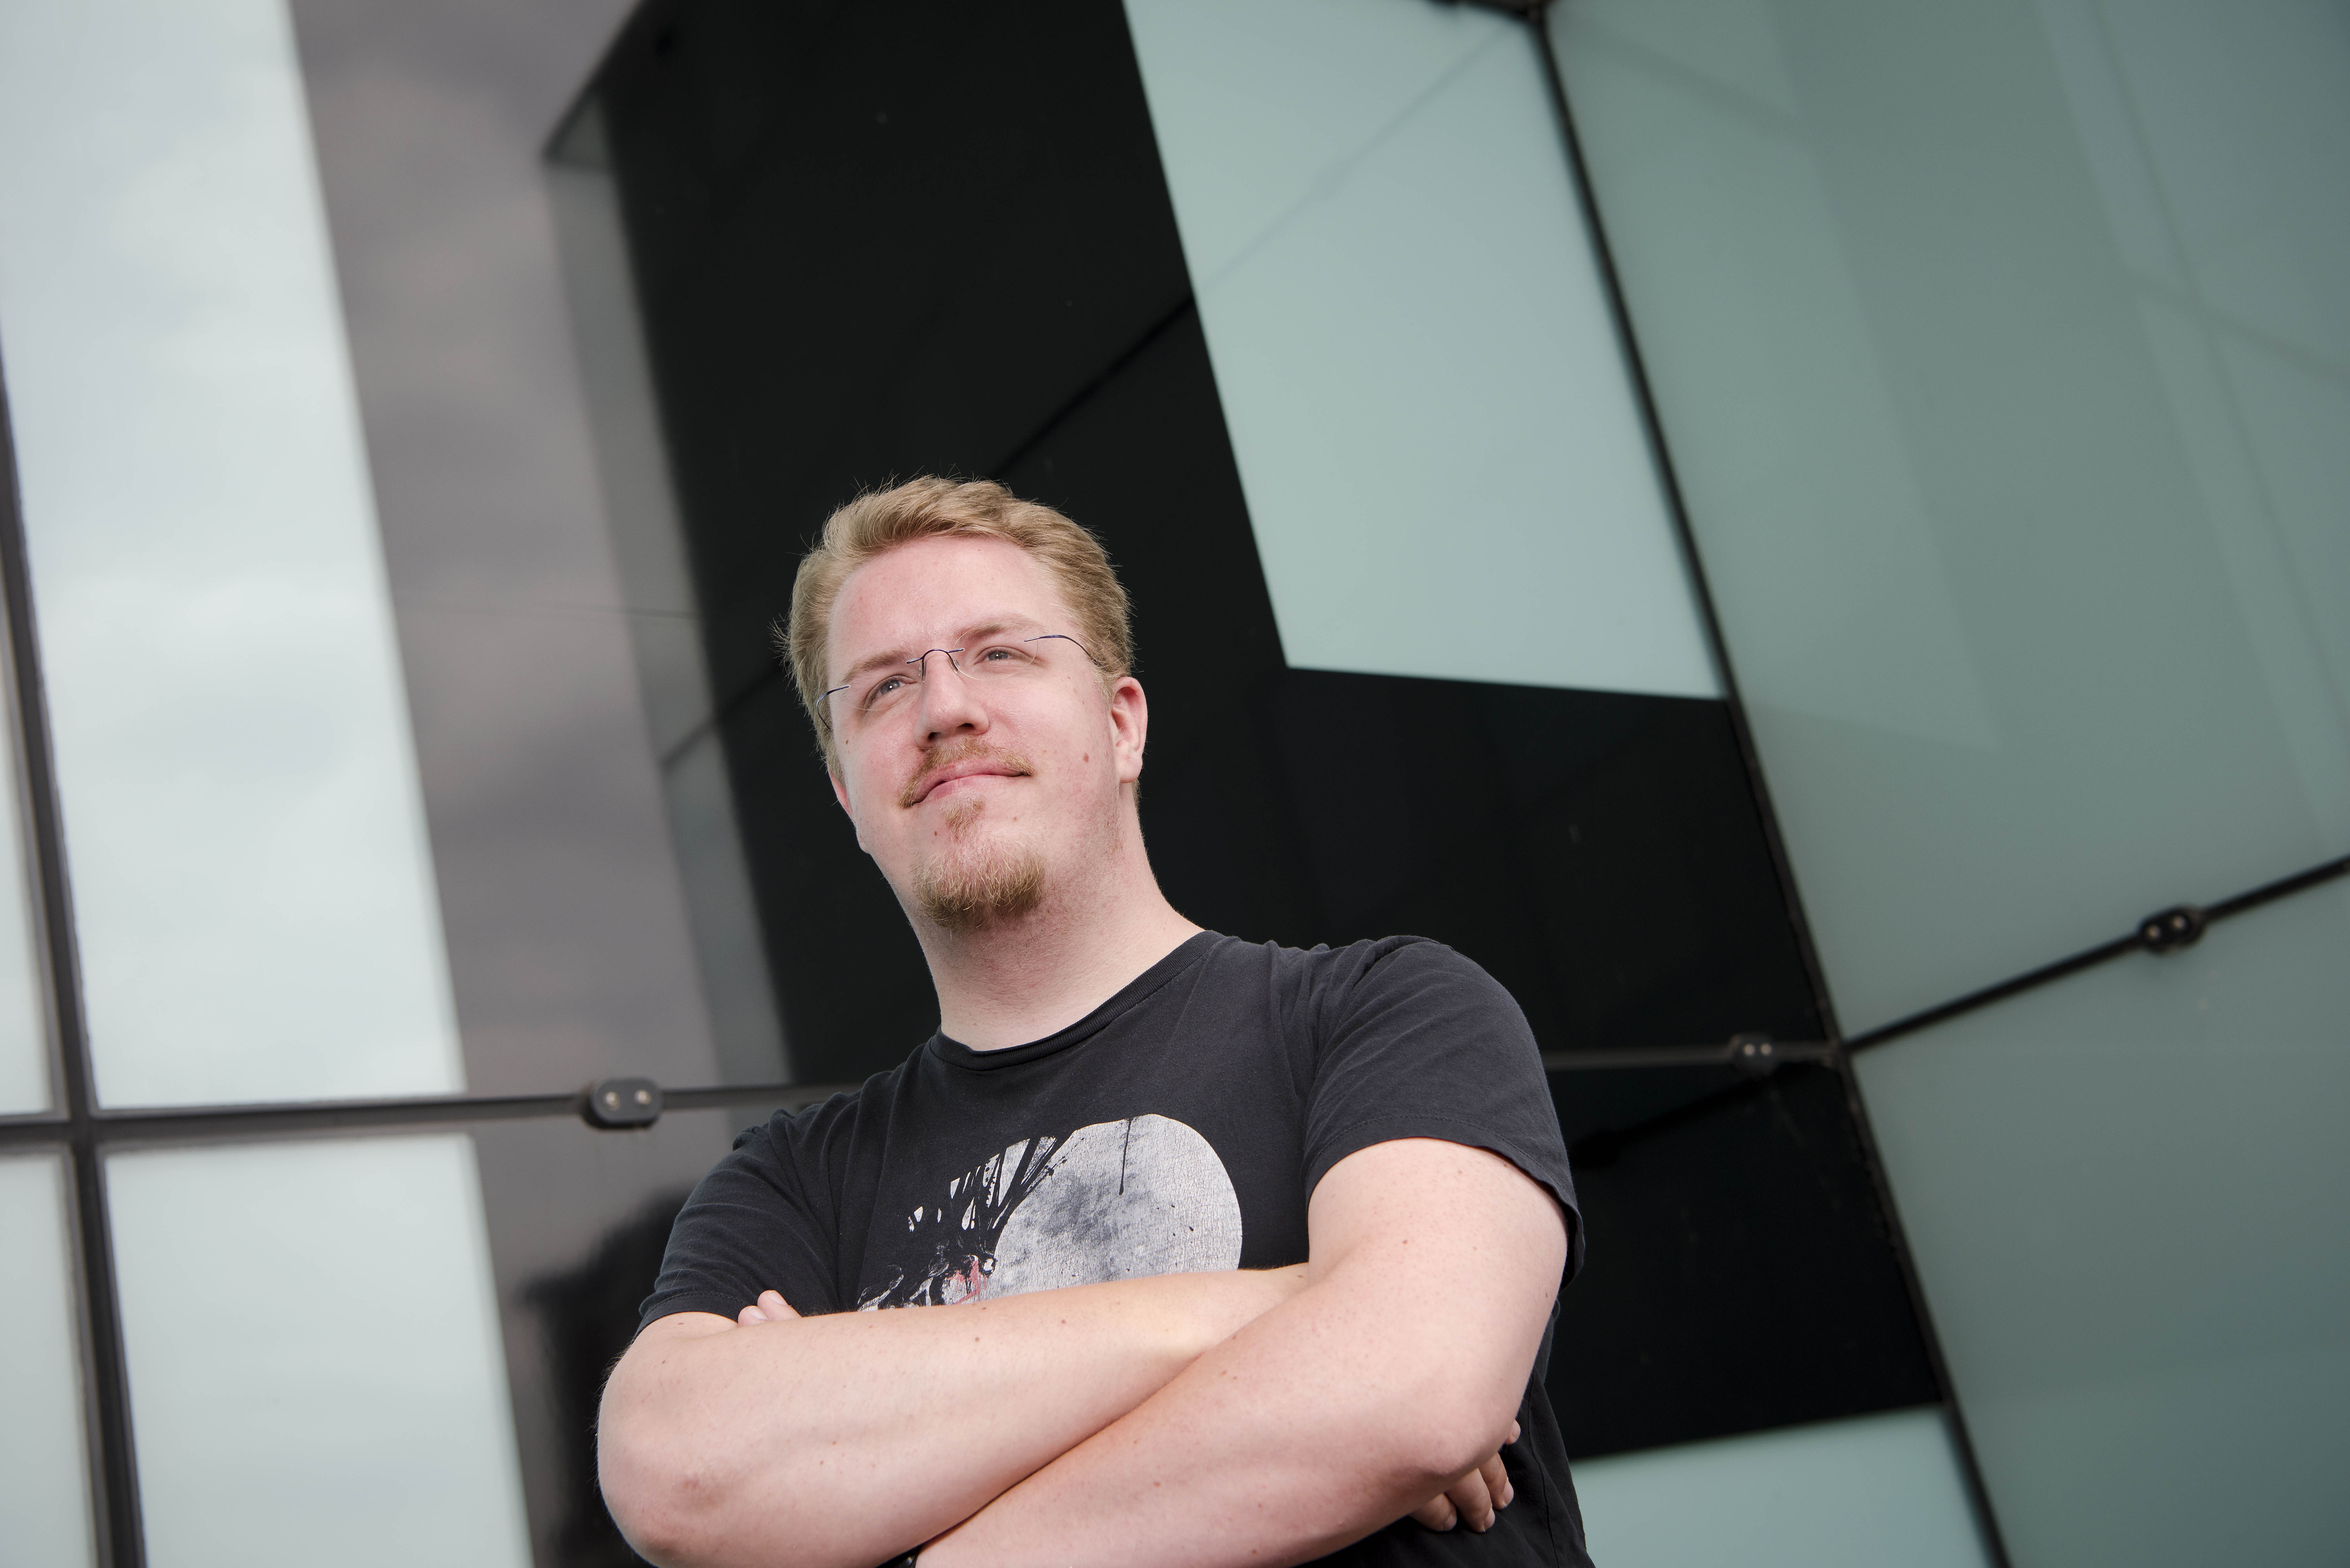 A new addition to the development team: Joost Elfering